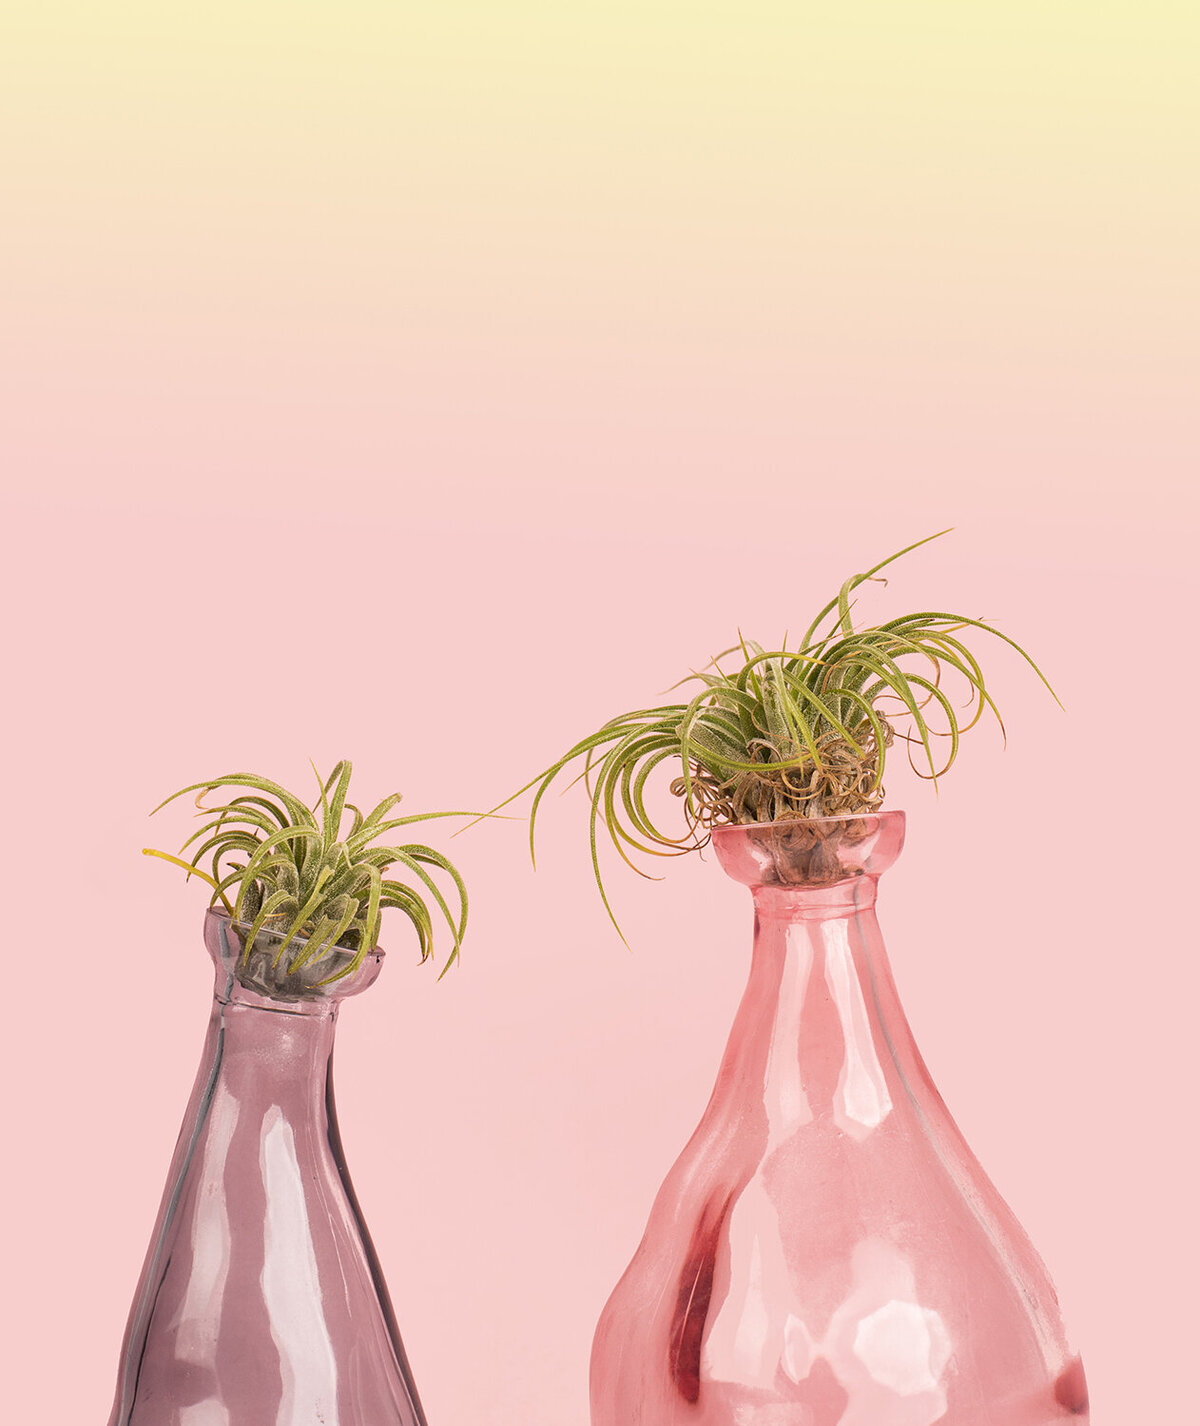 los angeles product photographer house plant project air plants